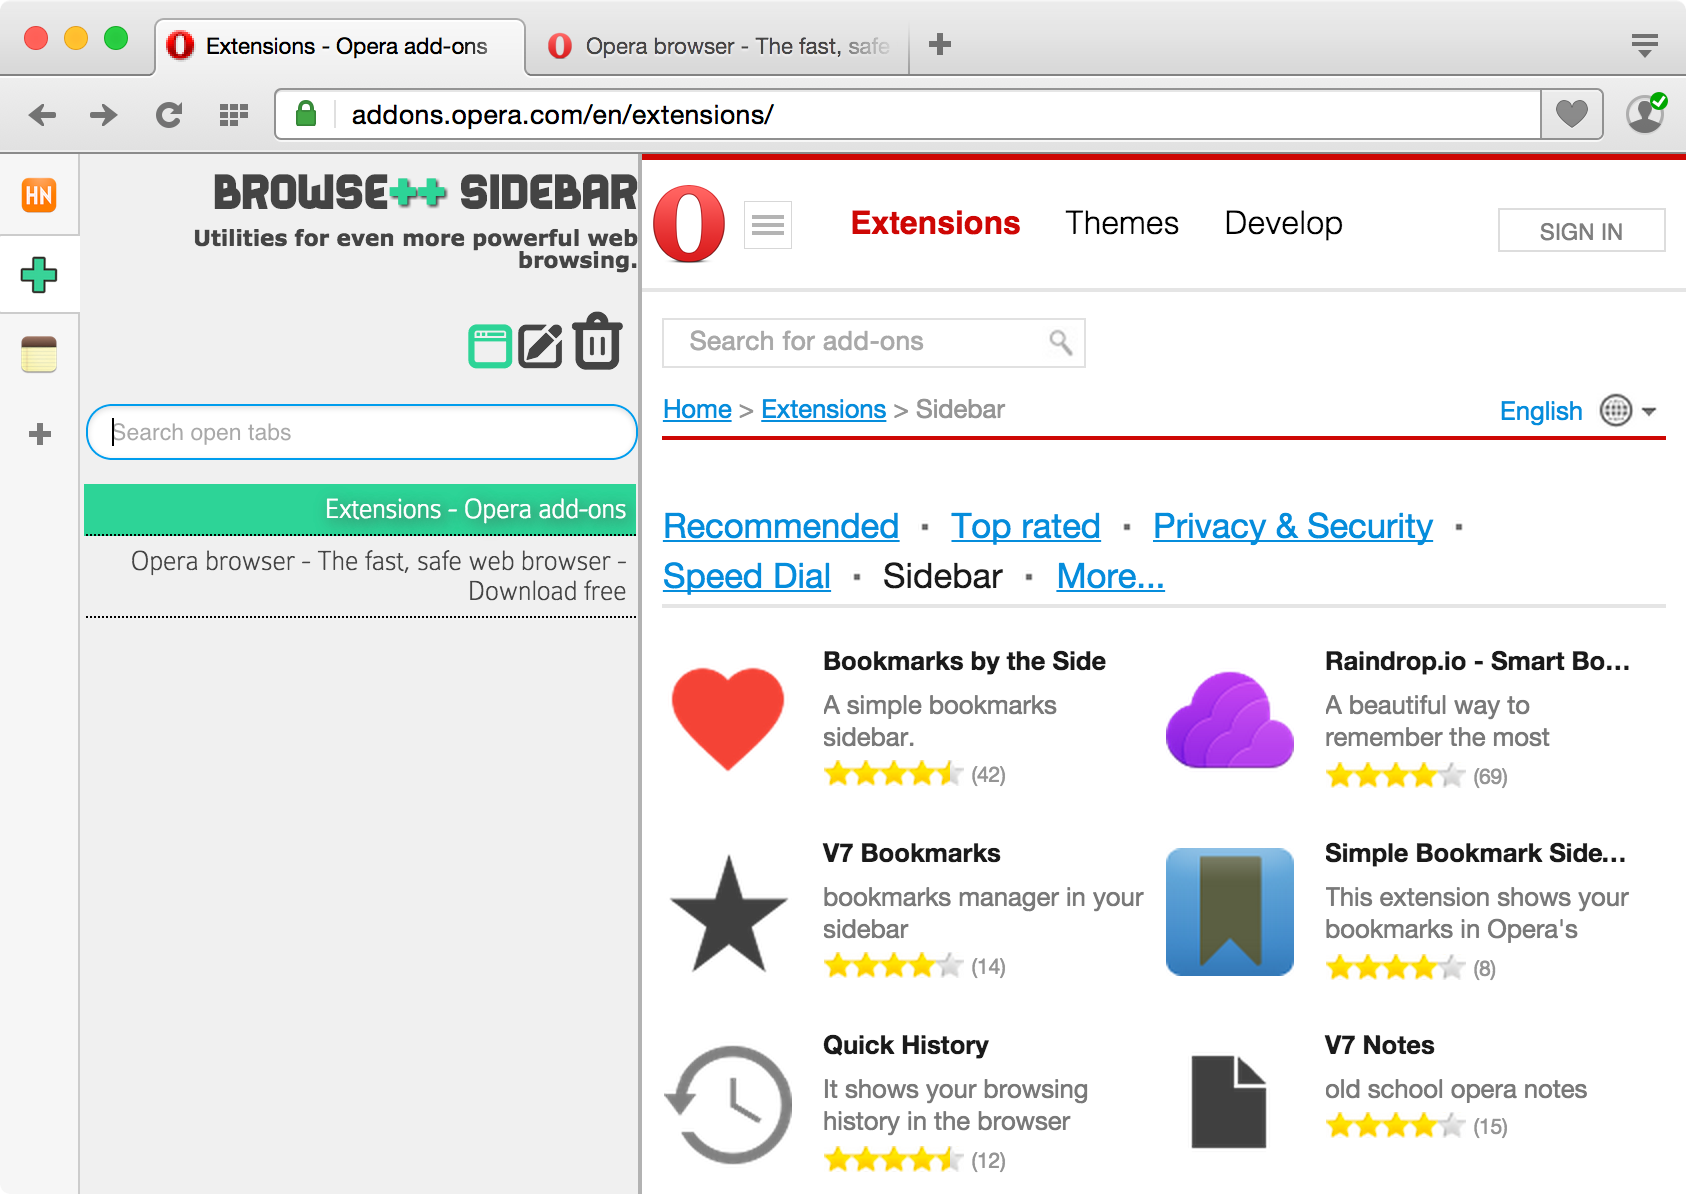 New in Opera: Sidebar extensions | Opera forums